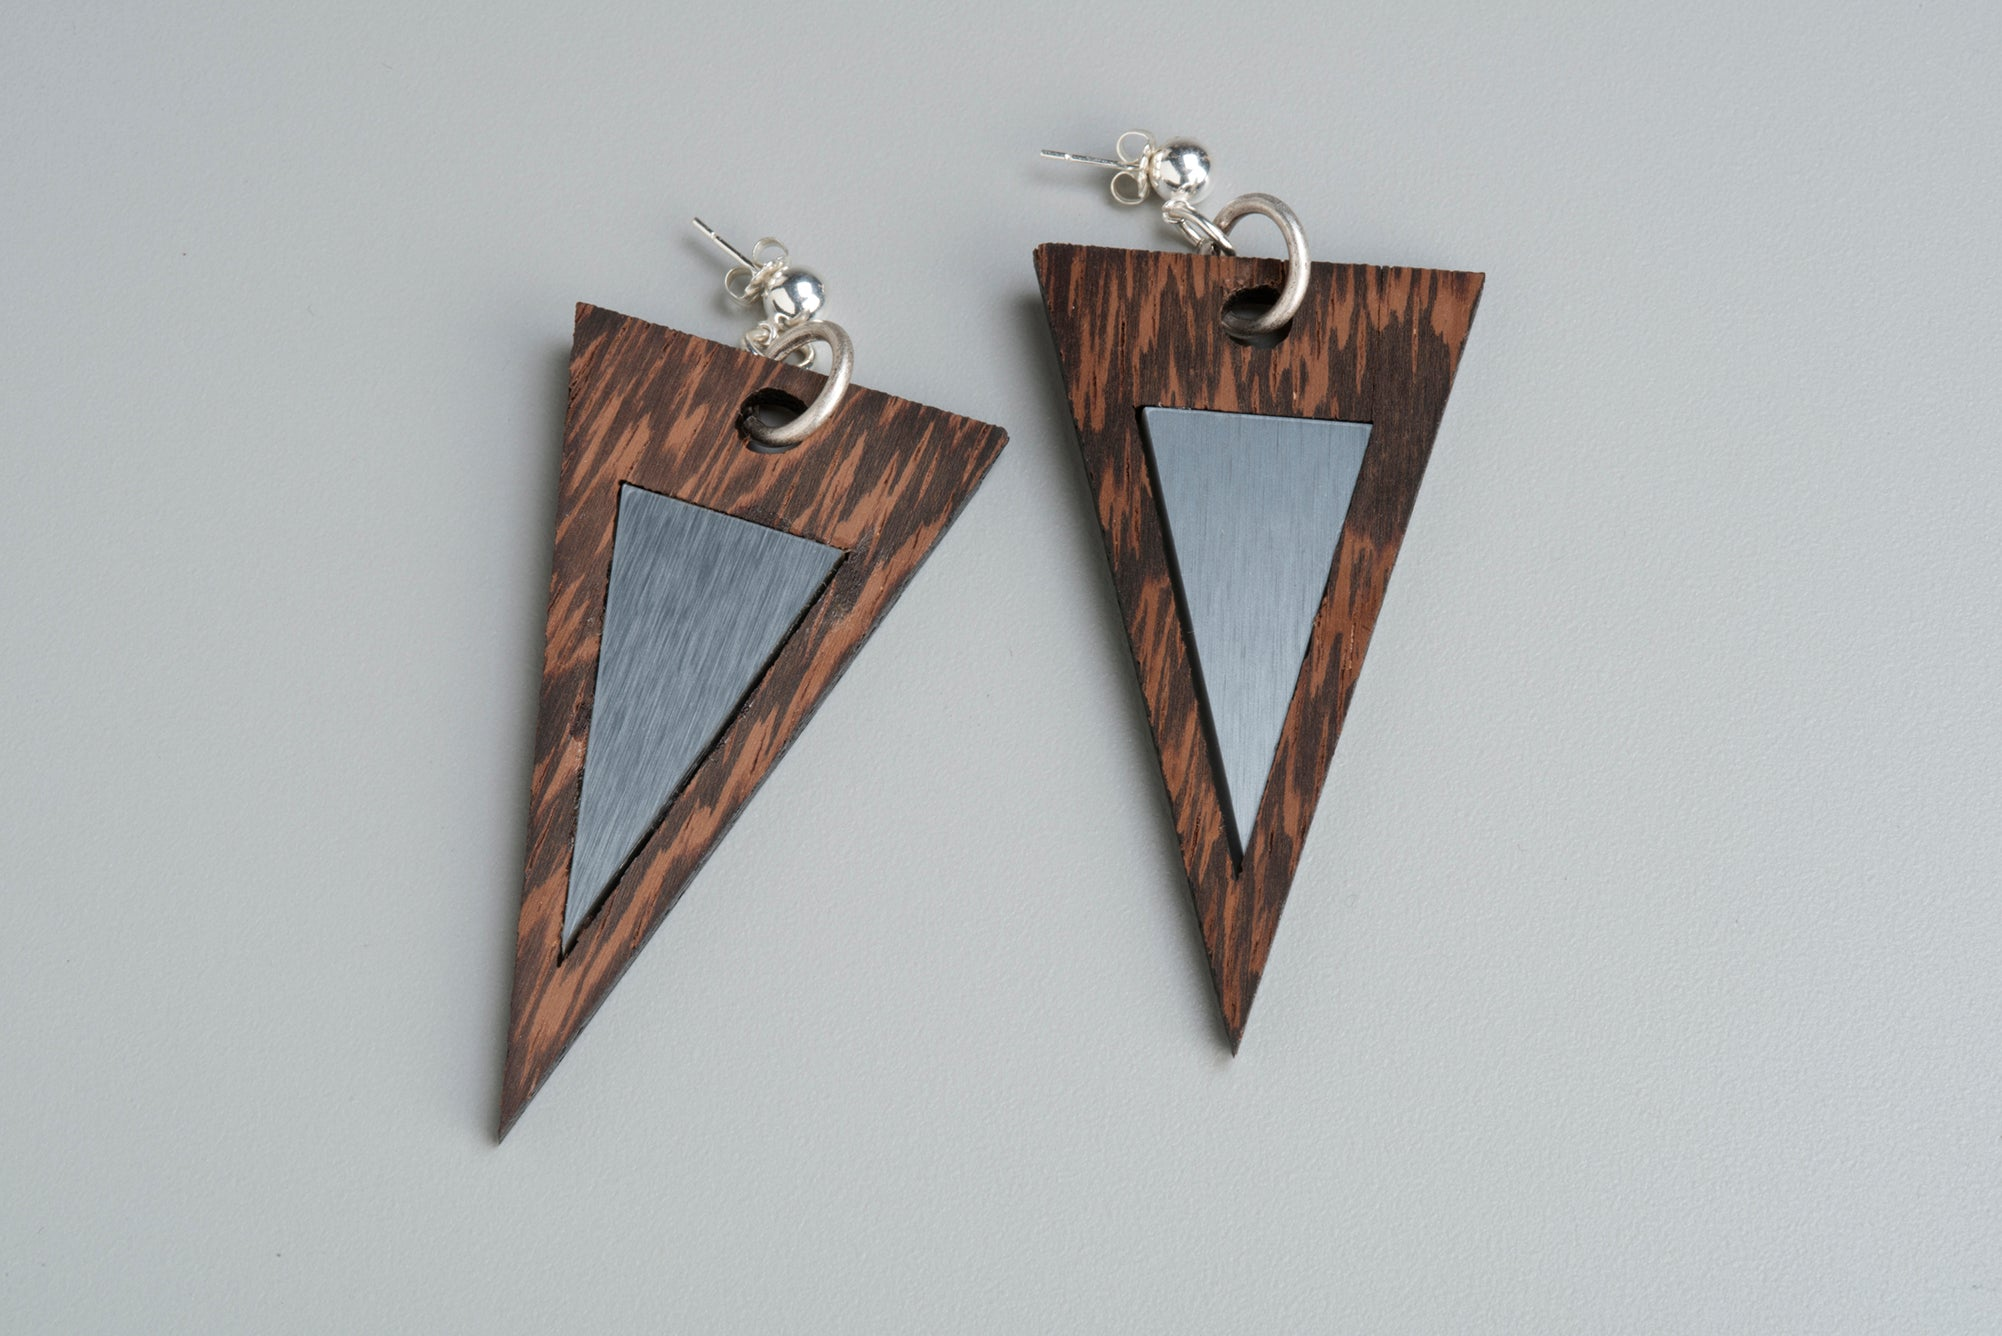 Triangle modern wood earrings with sterling silver post. Adds a great coolness to your casual outfit.